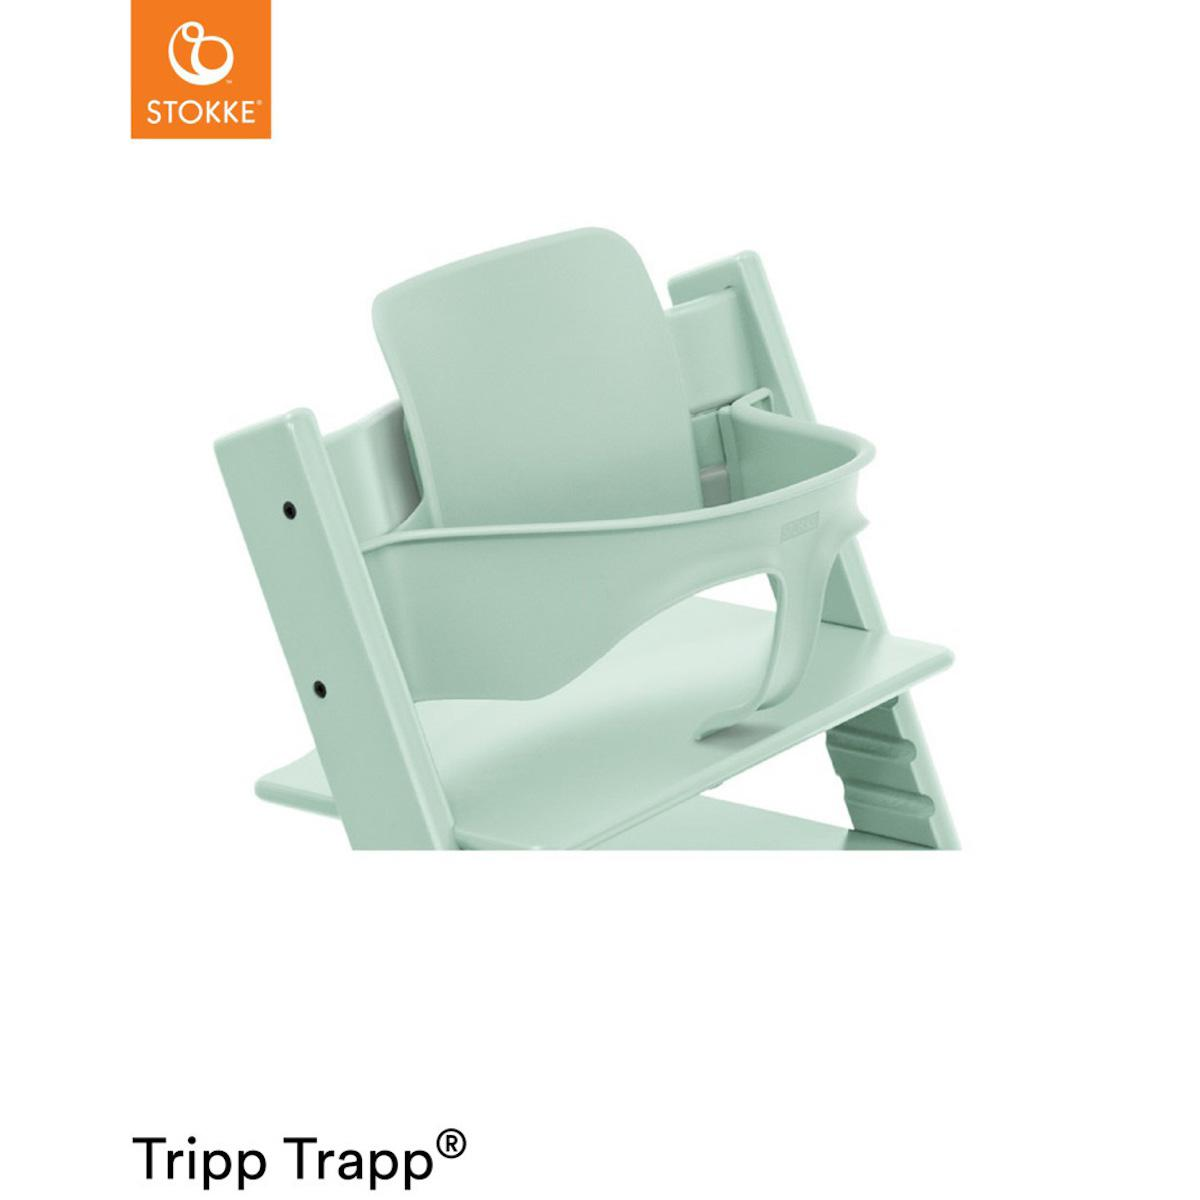 Baby set chaise haute TRIPP TRAPP Stokke Soft Mint